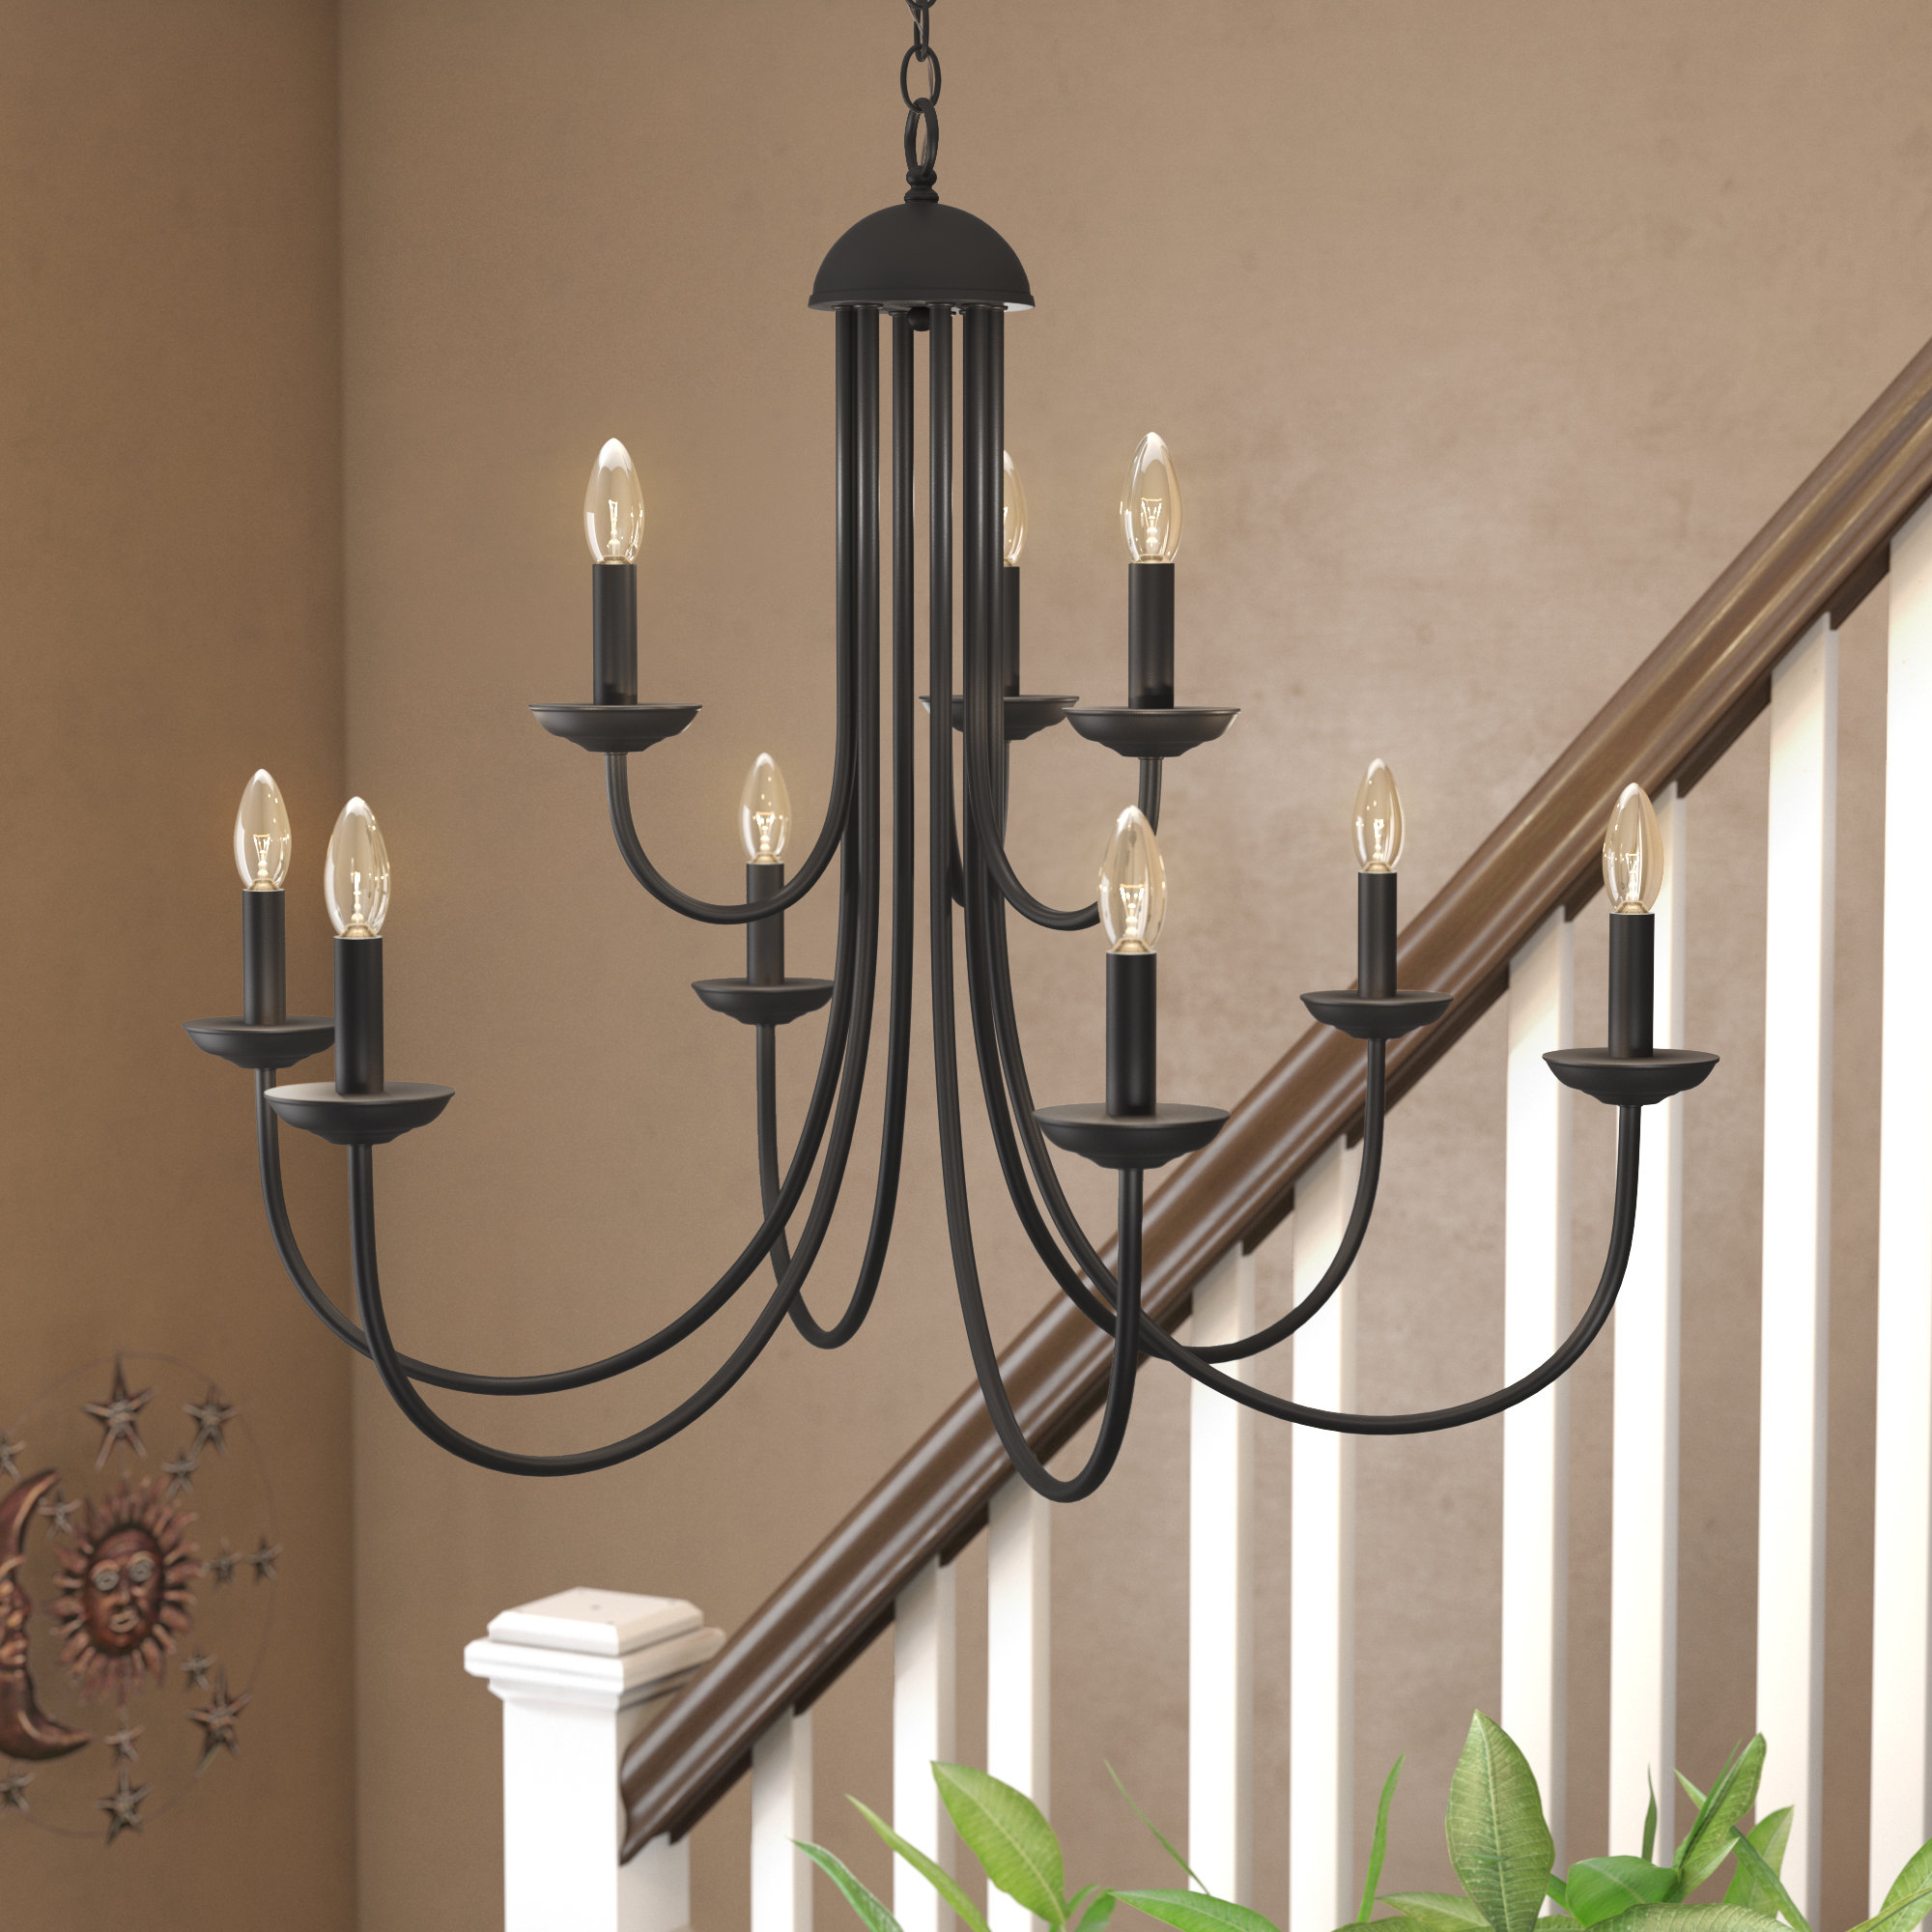 Newest Farmhouse & Rustic Charlton Home Chandeliers (View 14 of 20)